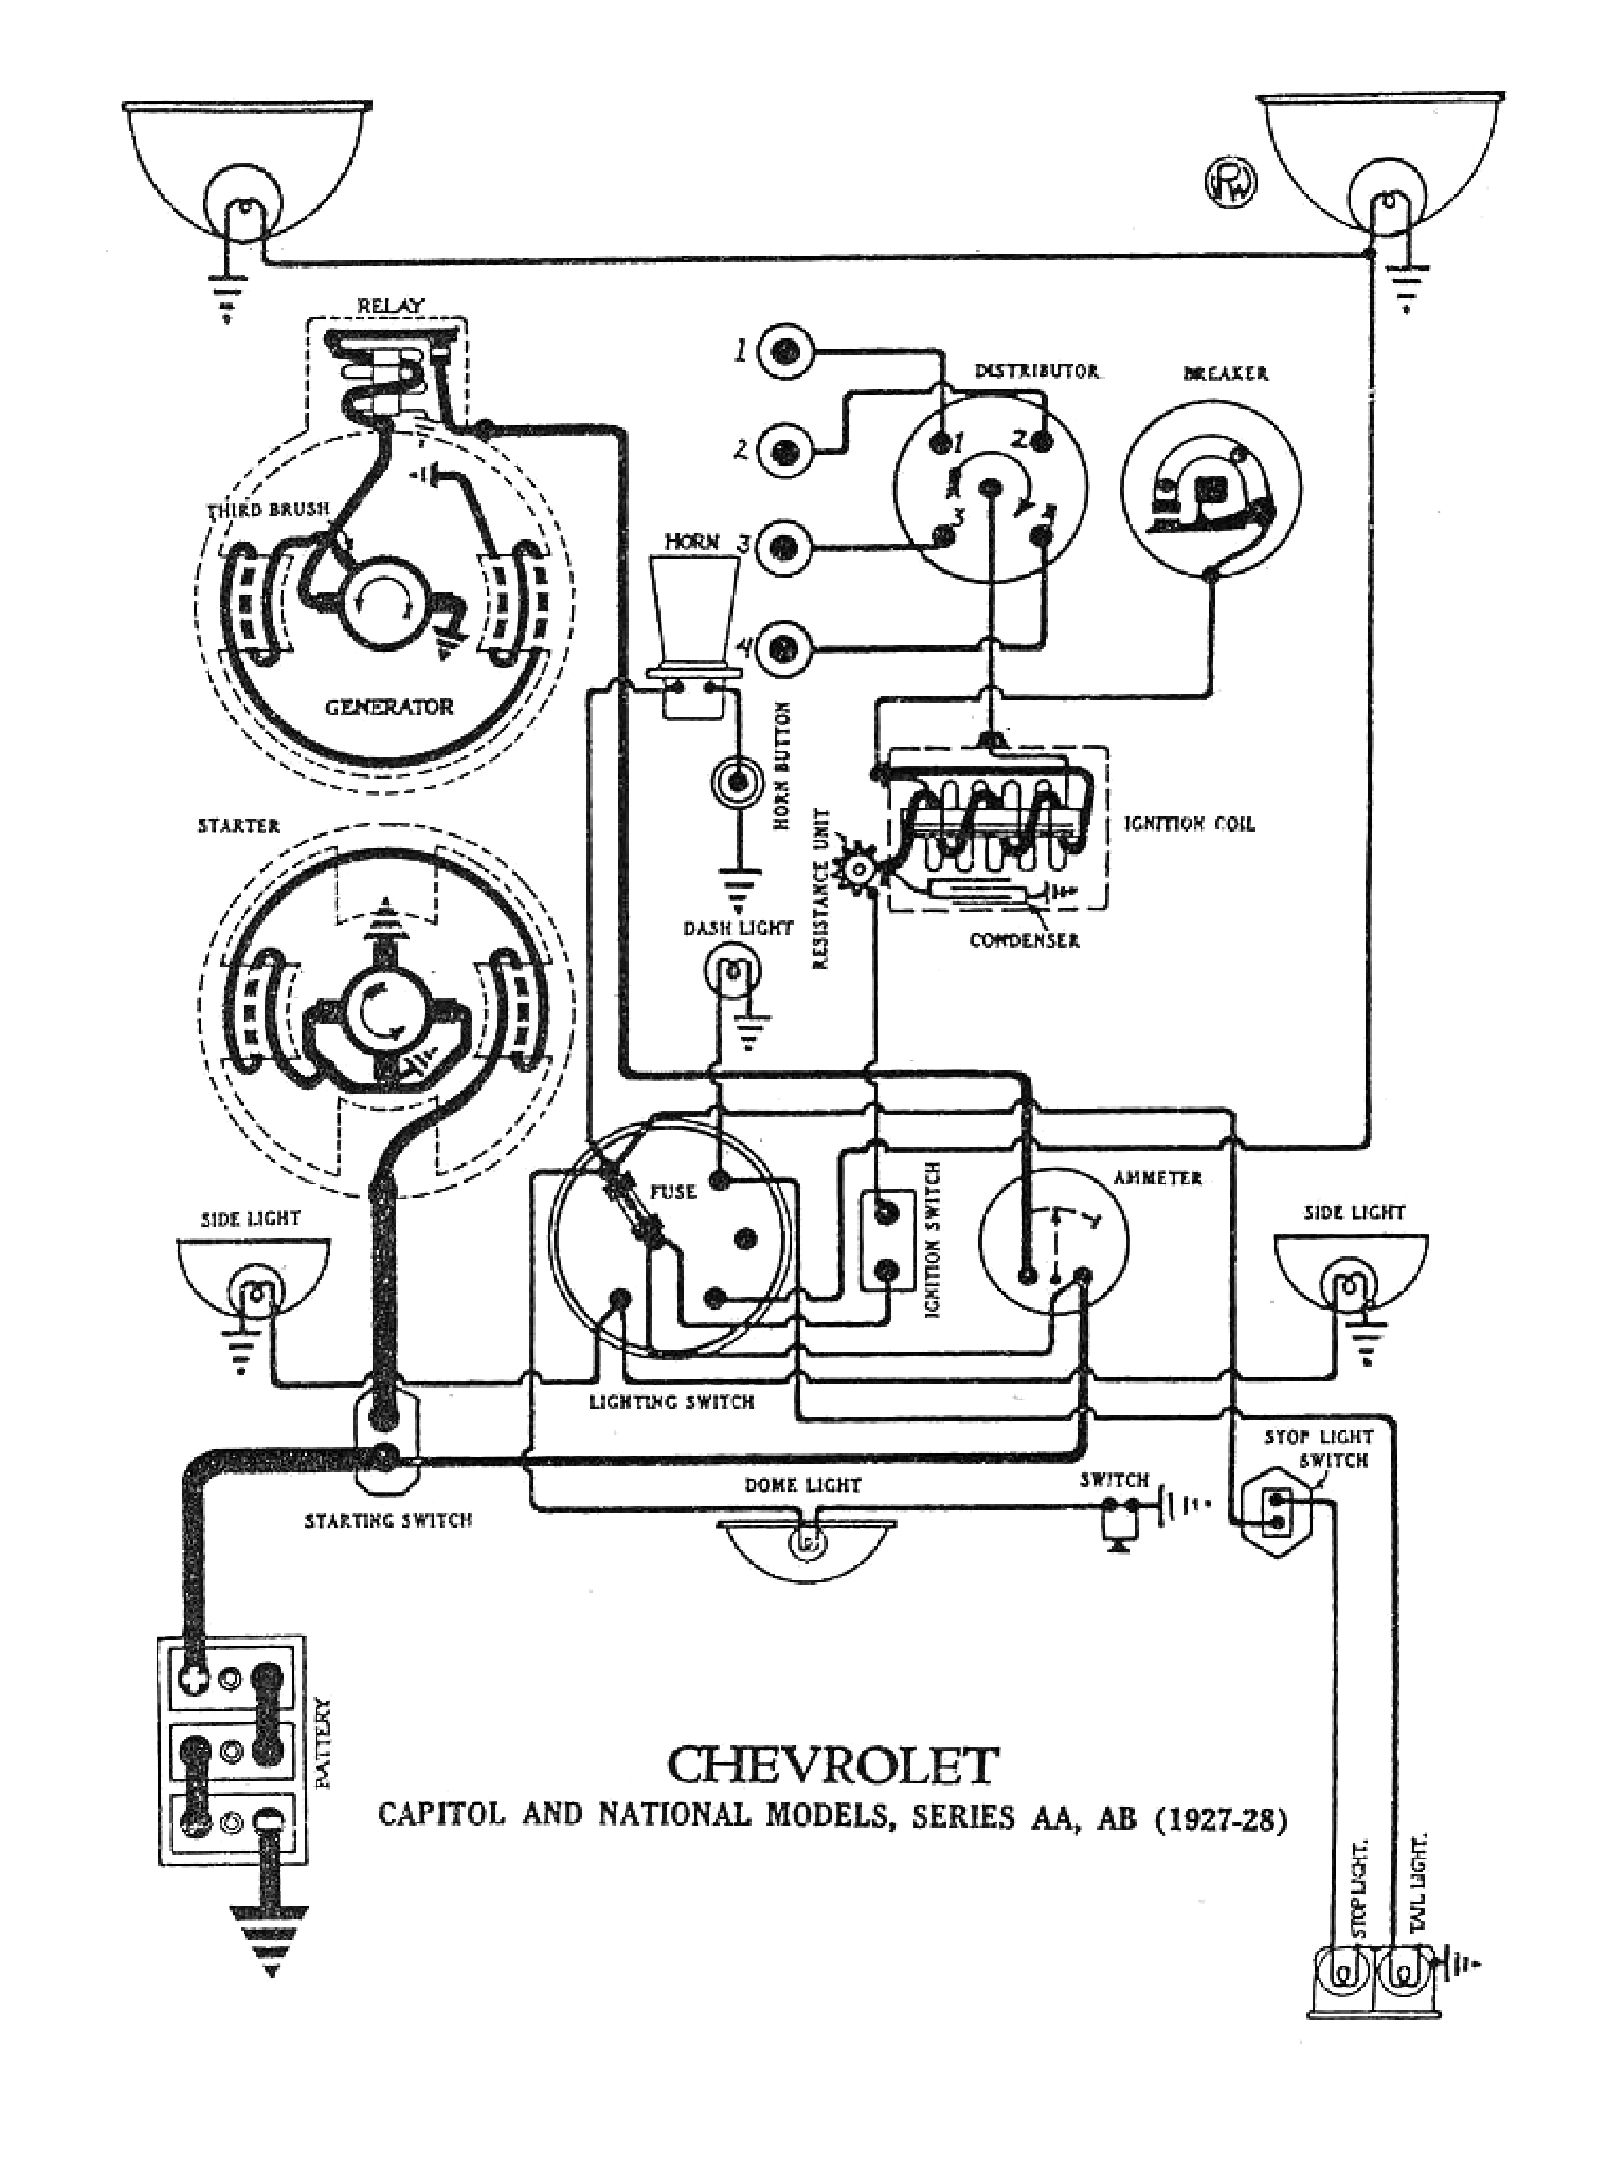 1972 Corvette Engine Wiring Diagram Manual Of 1970 Chevy Pickup Blower Motor Ac Blog About Diagrams Rh Clares Driving Co Uk